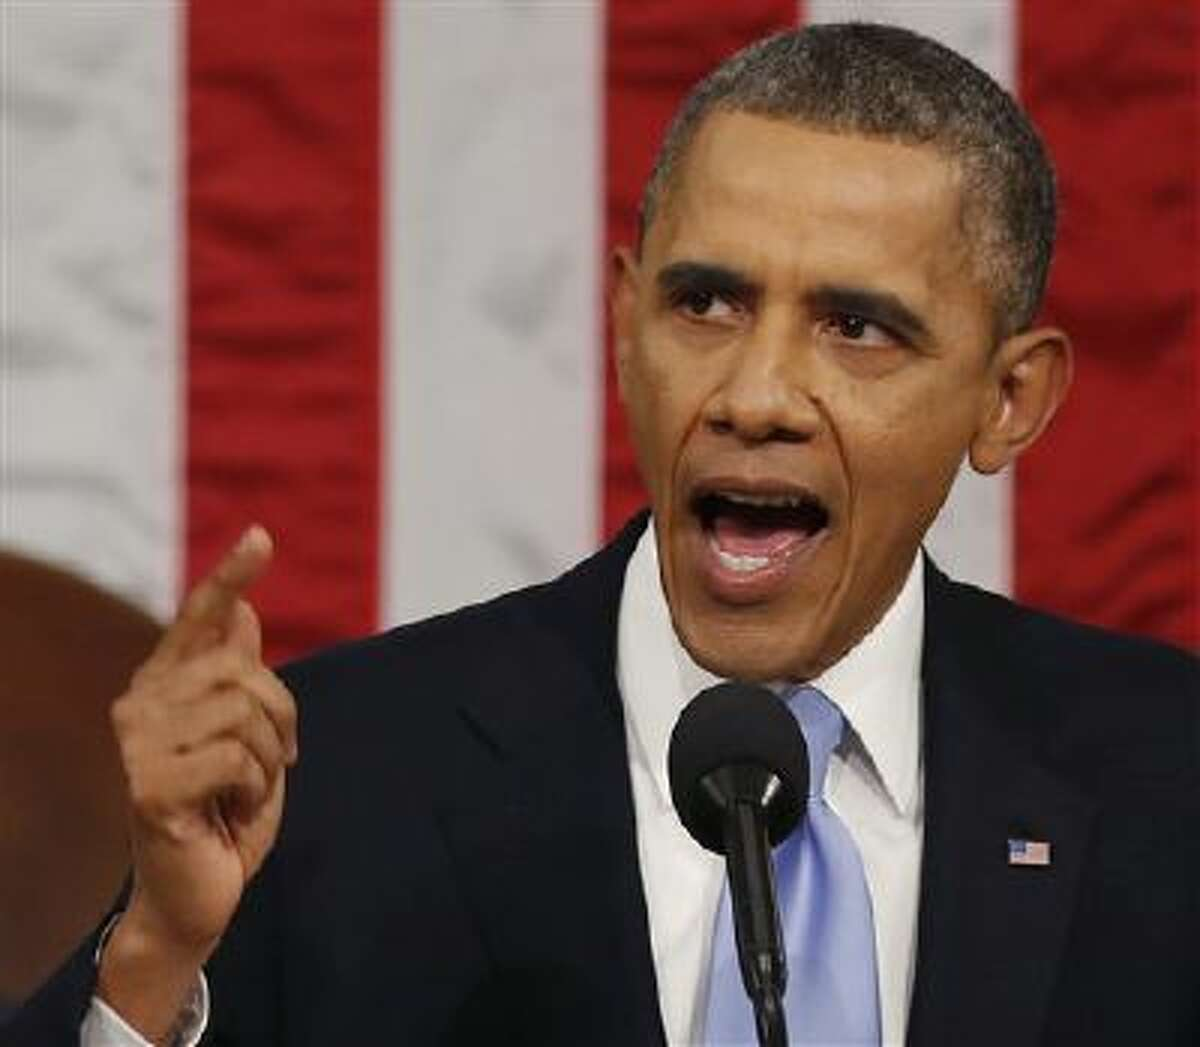 President Barack Obama delivers the State of Union address Tuesday night.